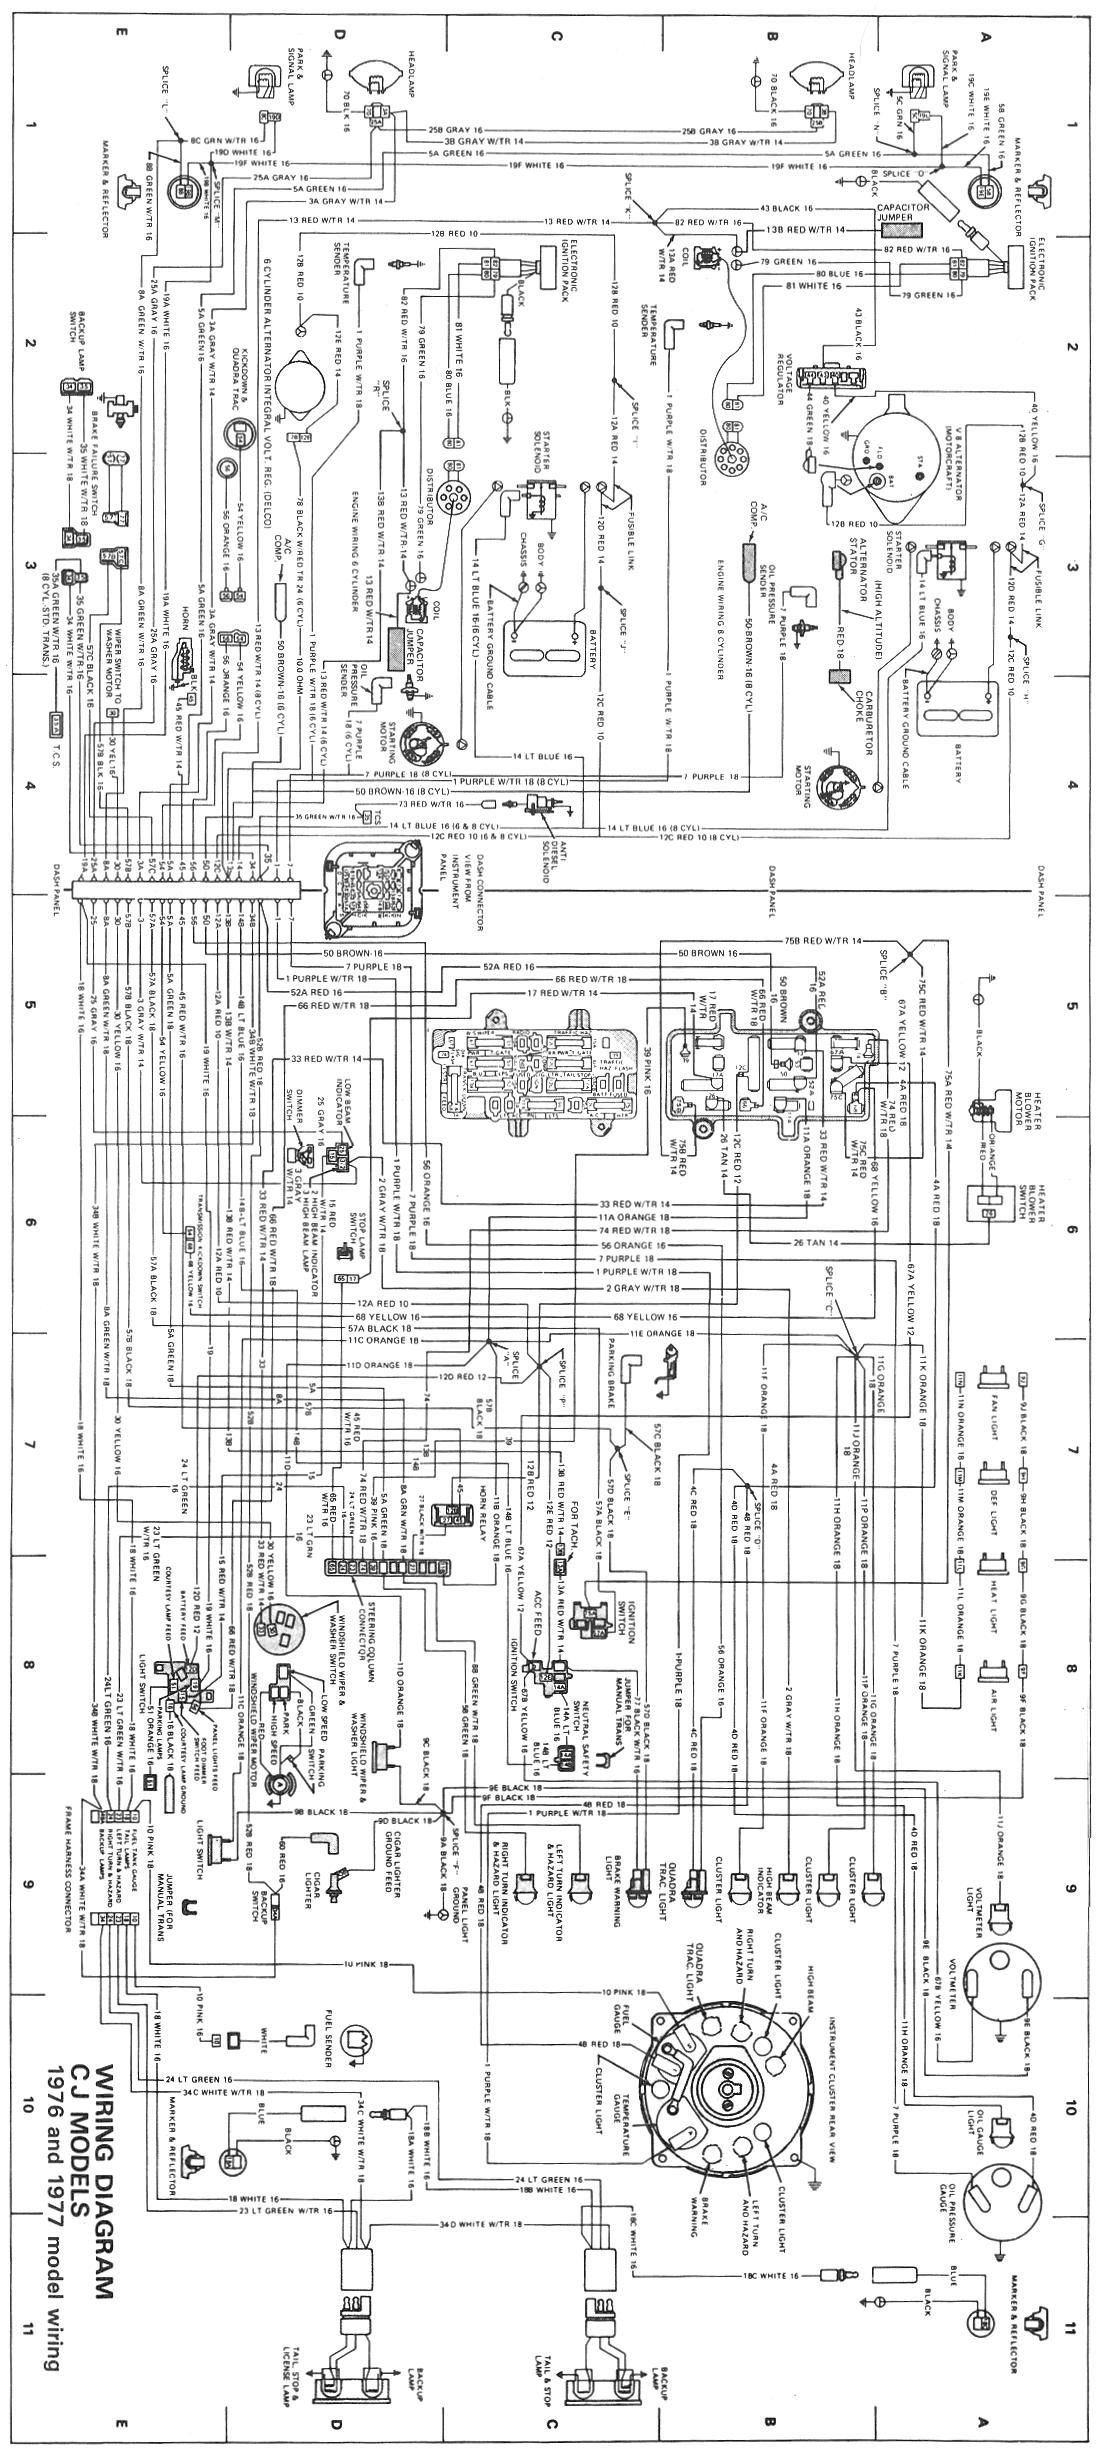 small resolution of jeep wiring diagrams 1976 and 1977 cj jeep wiring pinterest 1985 jeep cj7 electrical diagram 1977 jeep cj7 diagram